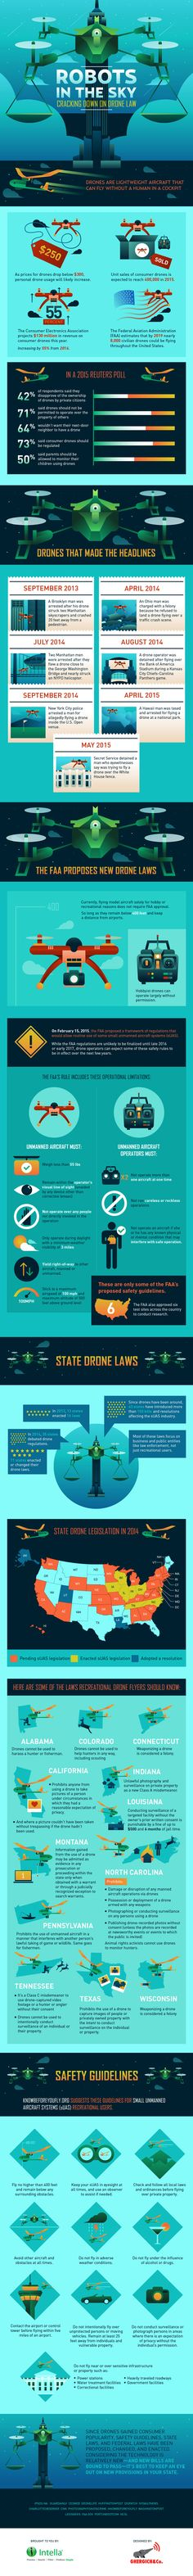 This Infographic Explains Current Recreational Drone Laws and Safety